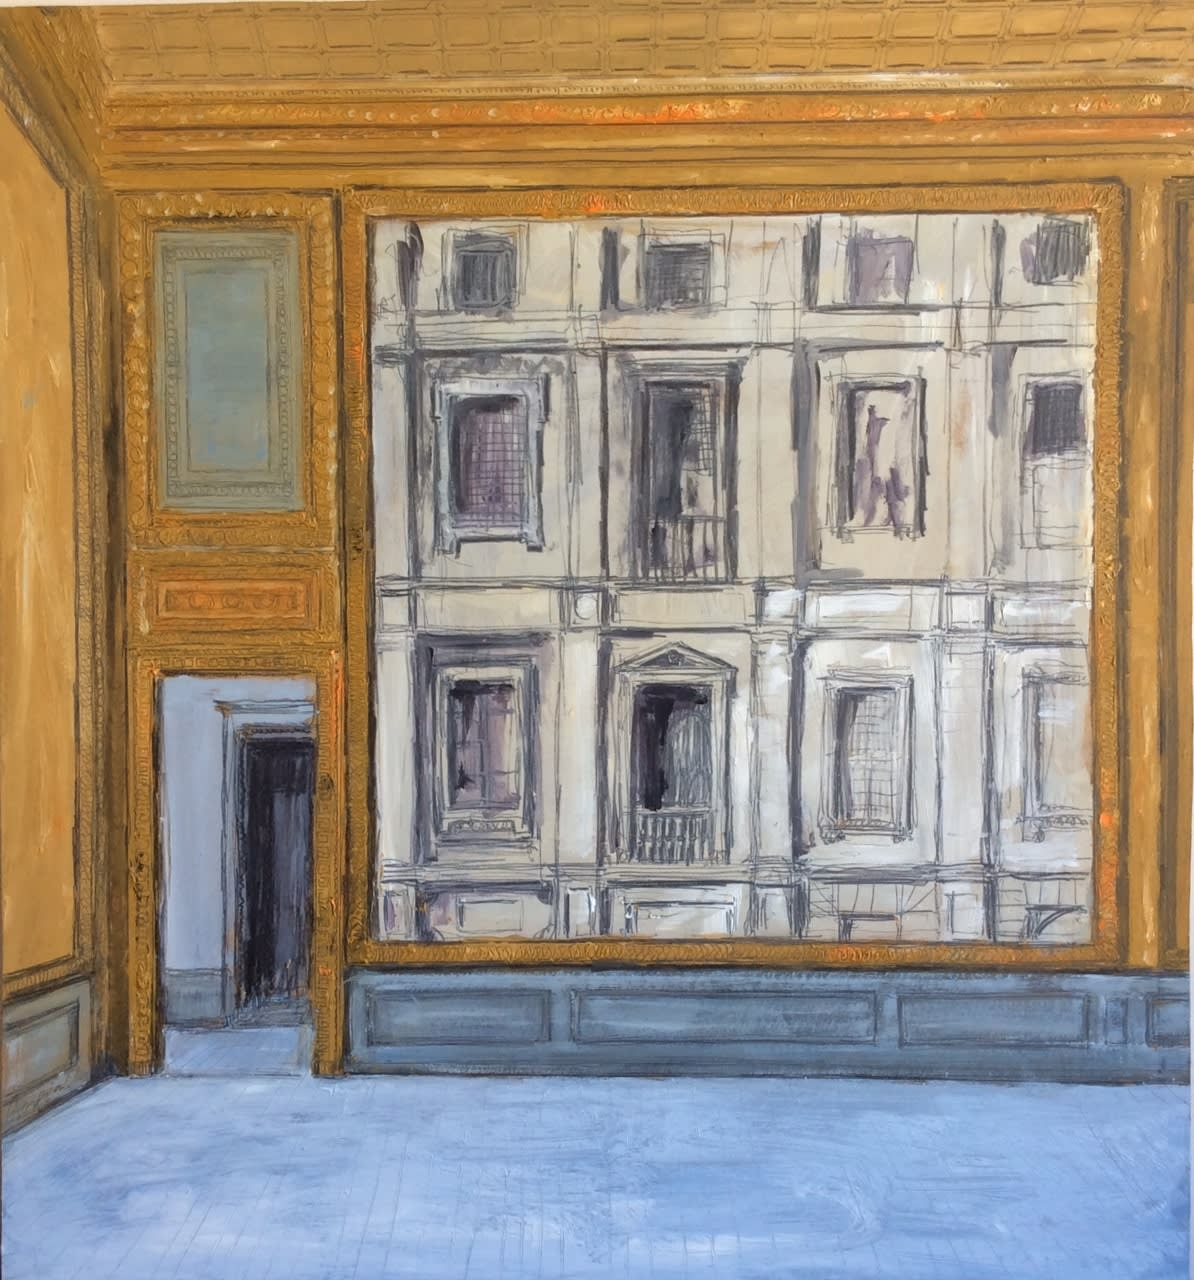 Neoclassical Palazzo - Roma 2020 Oil on panel 70 x 64 cm / 27.5 x 25 in